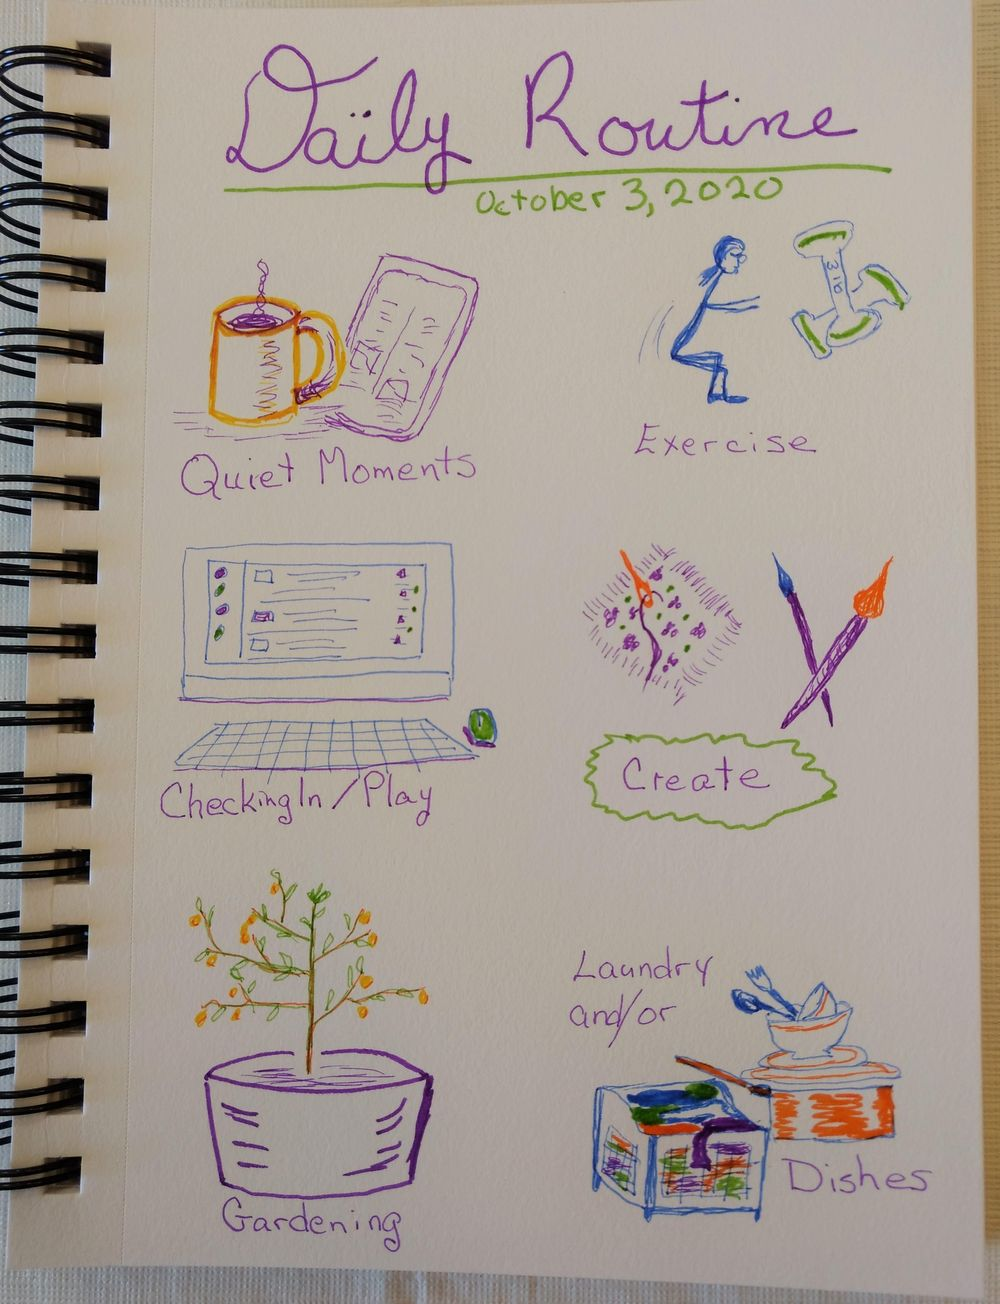 Creating a habit. Maybe ;) - image 9 - student project